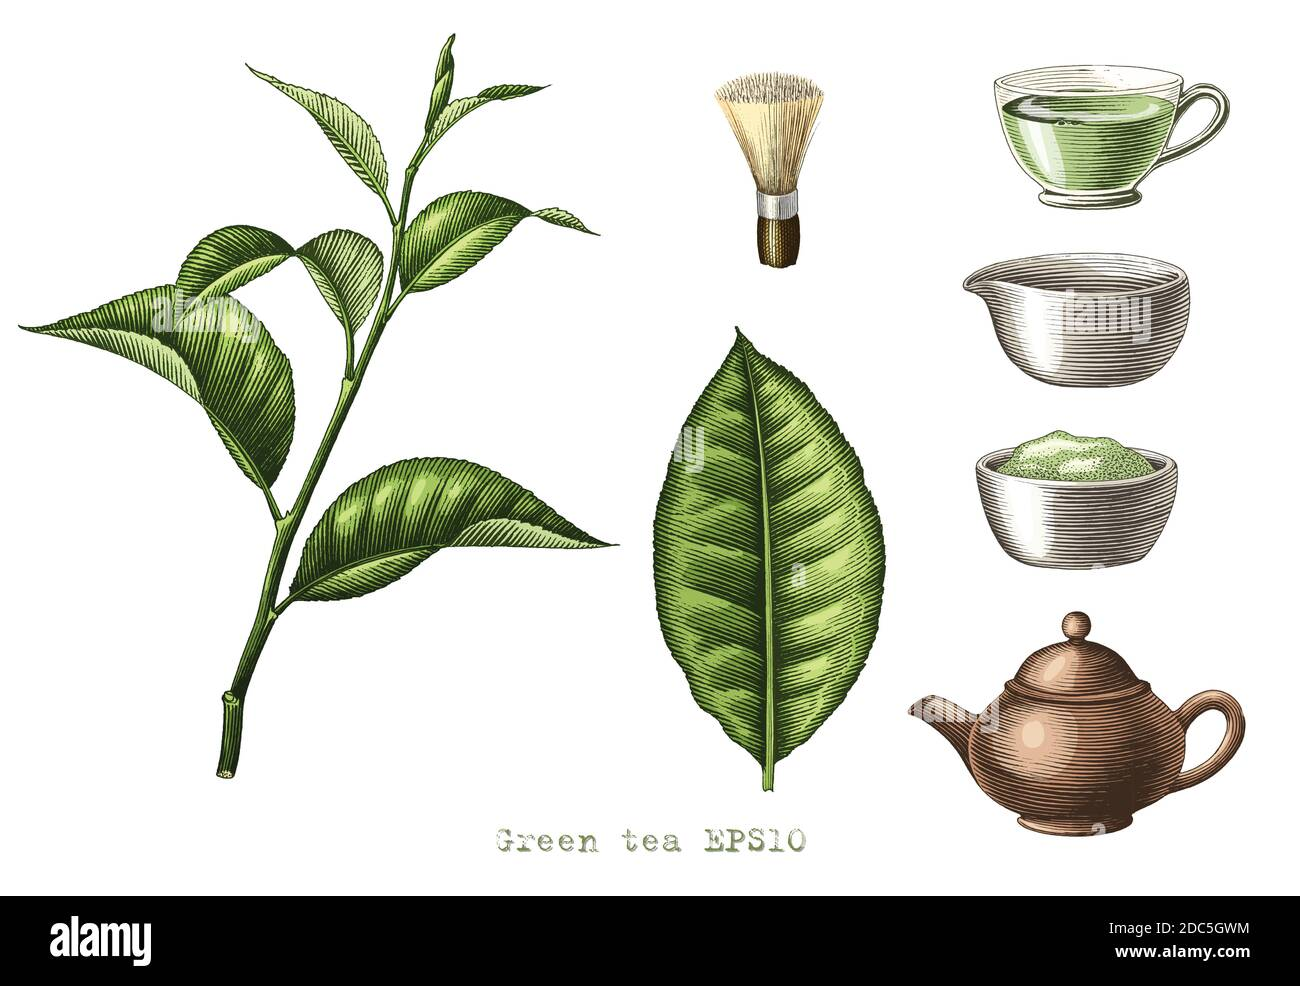 Green tea collection hand drawing engraving style clipart isolated on white background Stock Vector